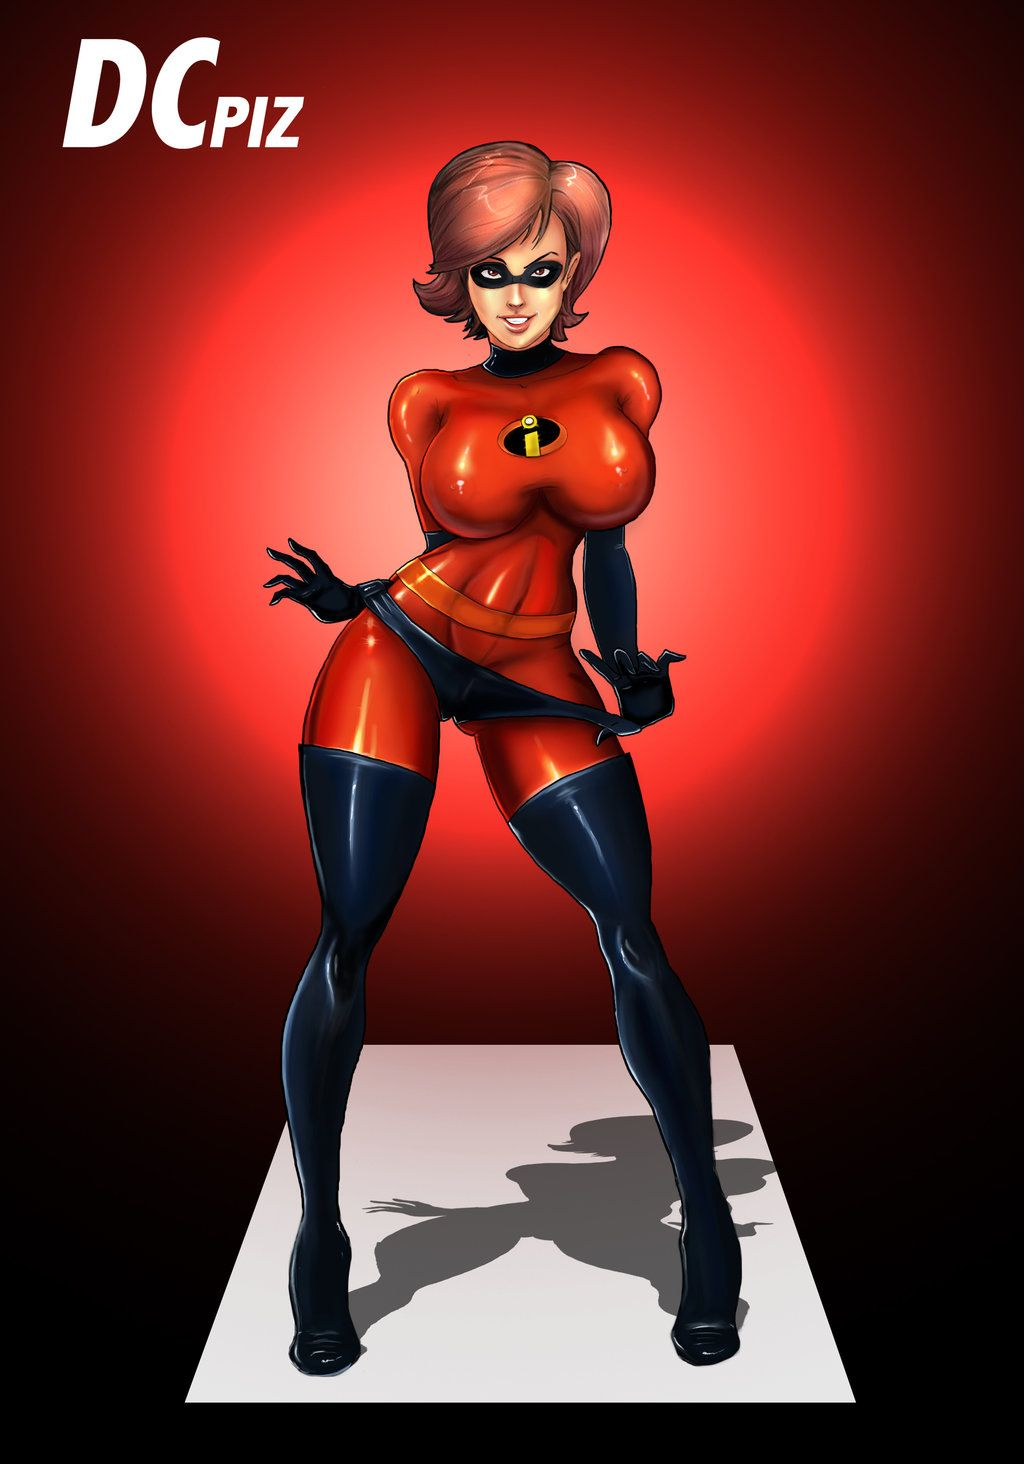 Incredibles Sex Stories Delightful mrs incredible is readydcpiz.deviantart on @deviantart